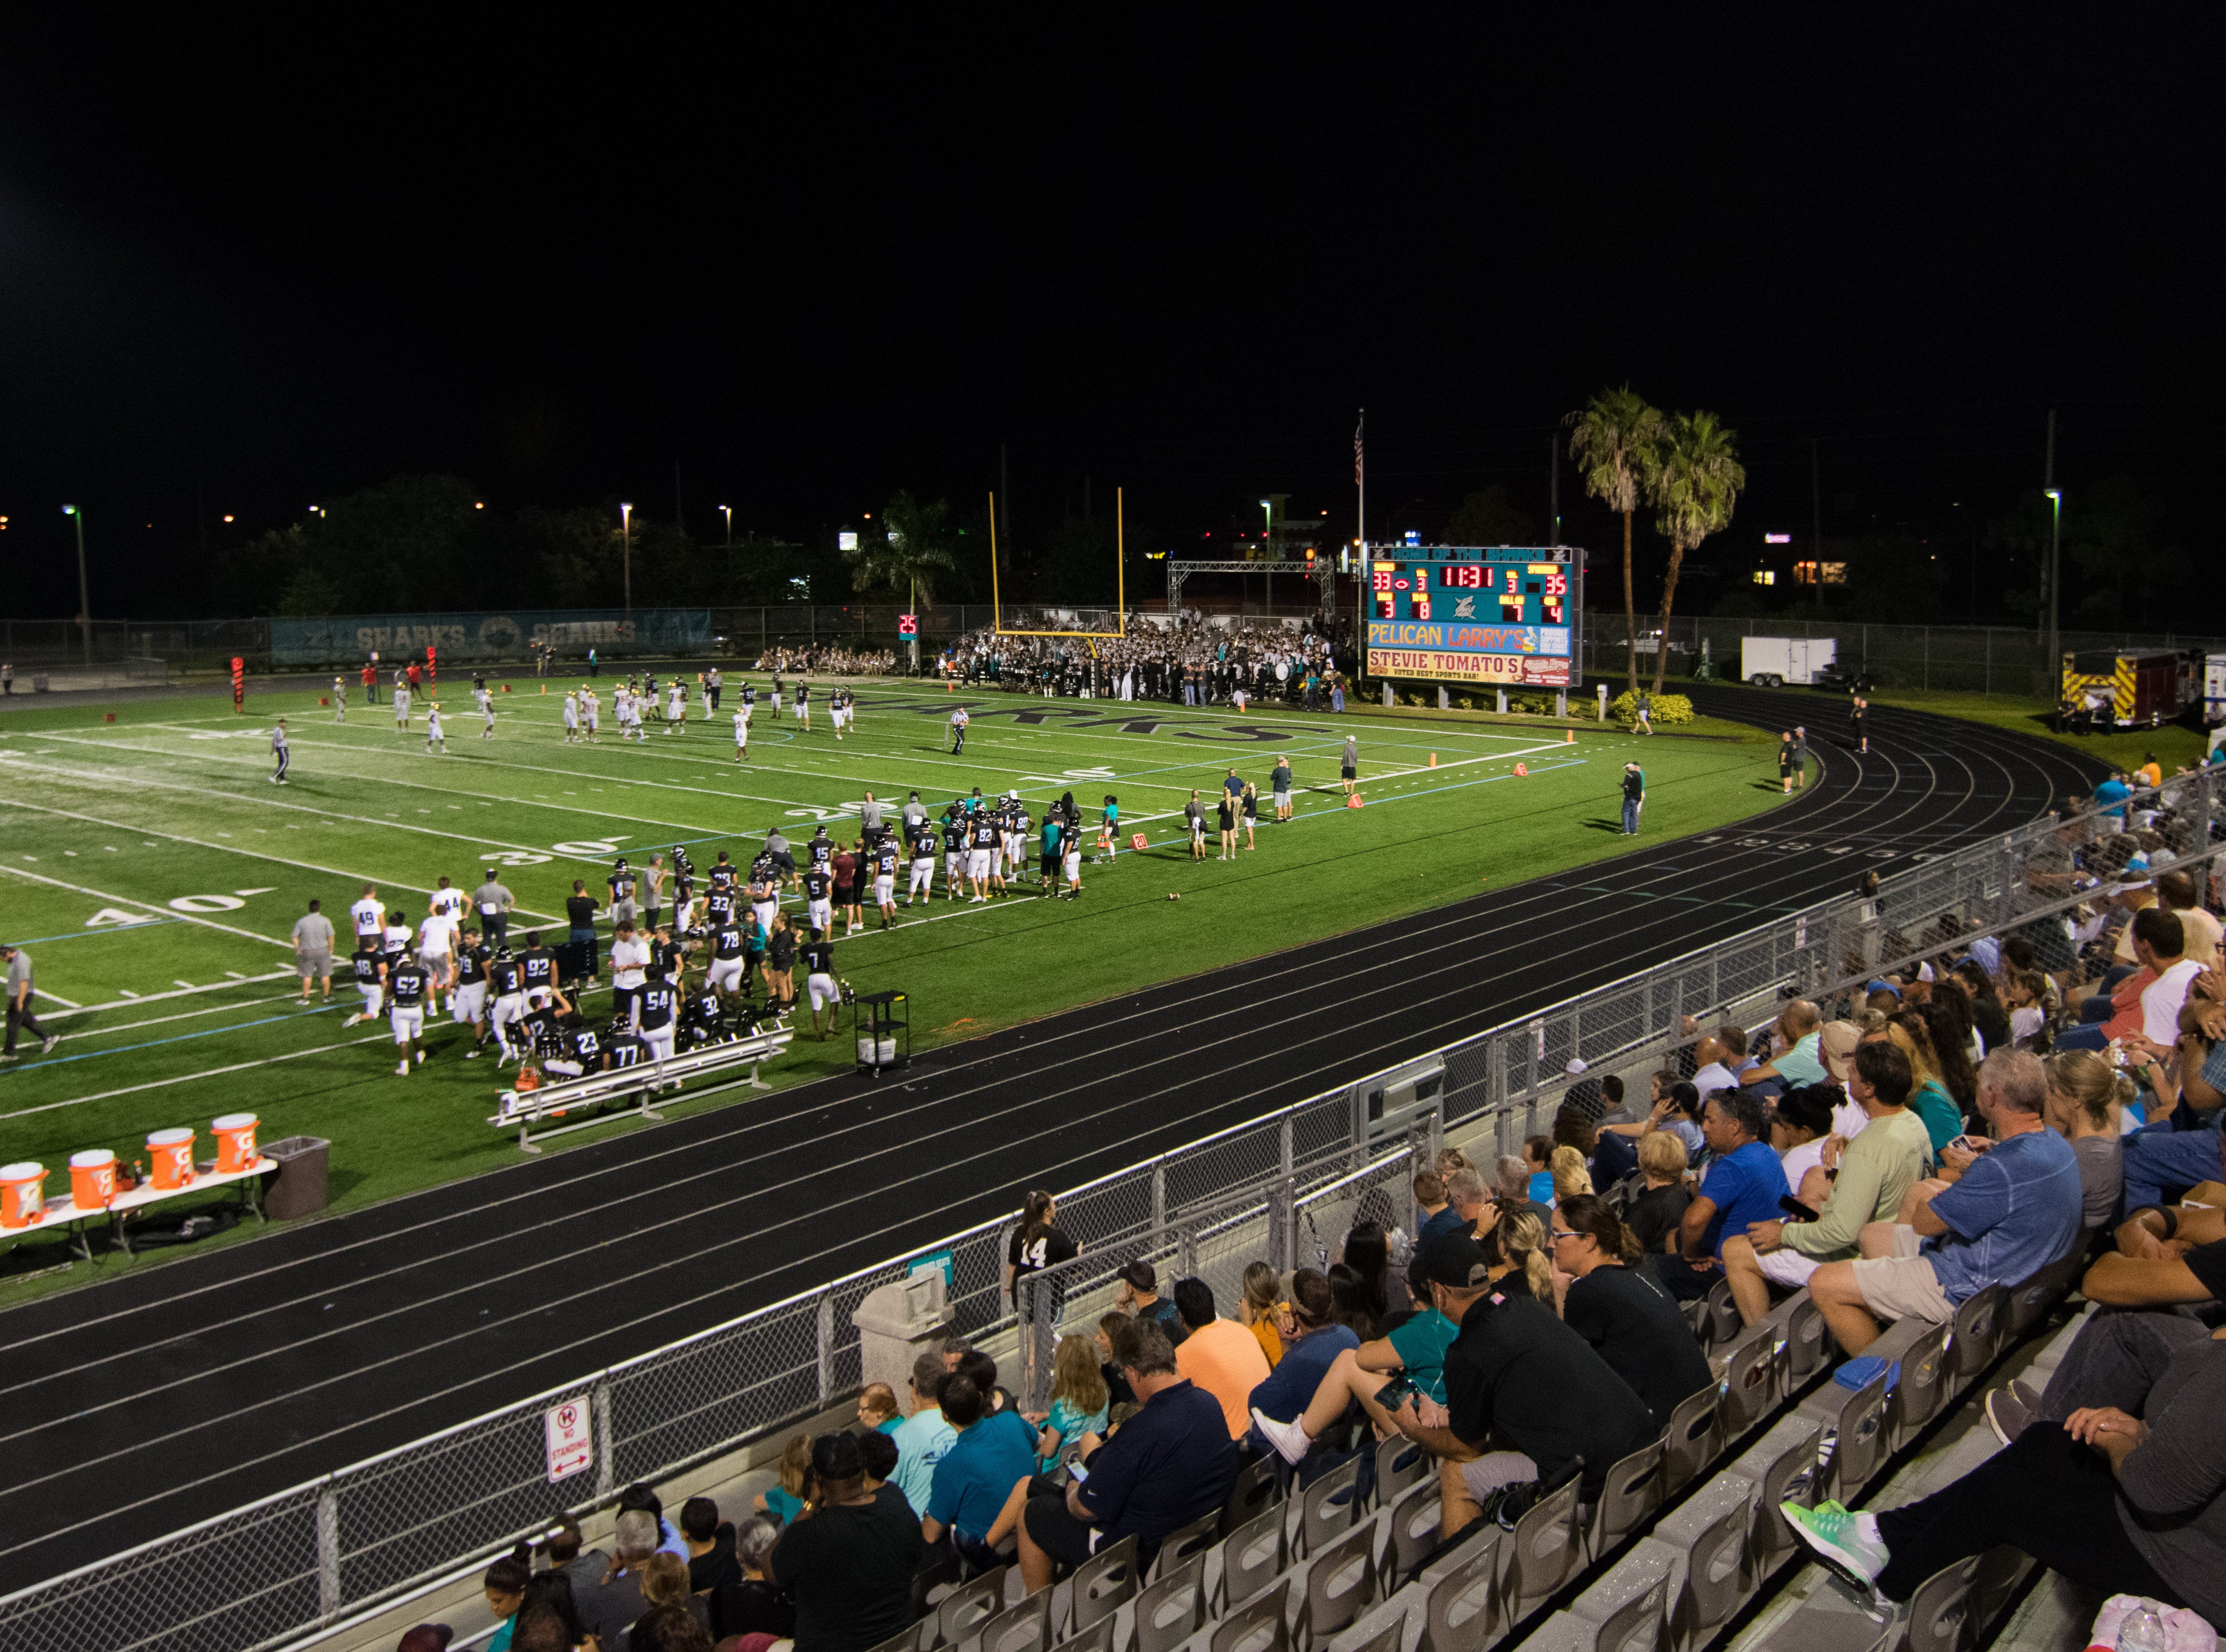 The Gulf Coast High School football team lost to Miami-Monsignor Pace, 35-33, on Friday, Sept. 7, 2018, at Tudryn Field.